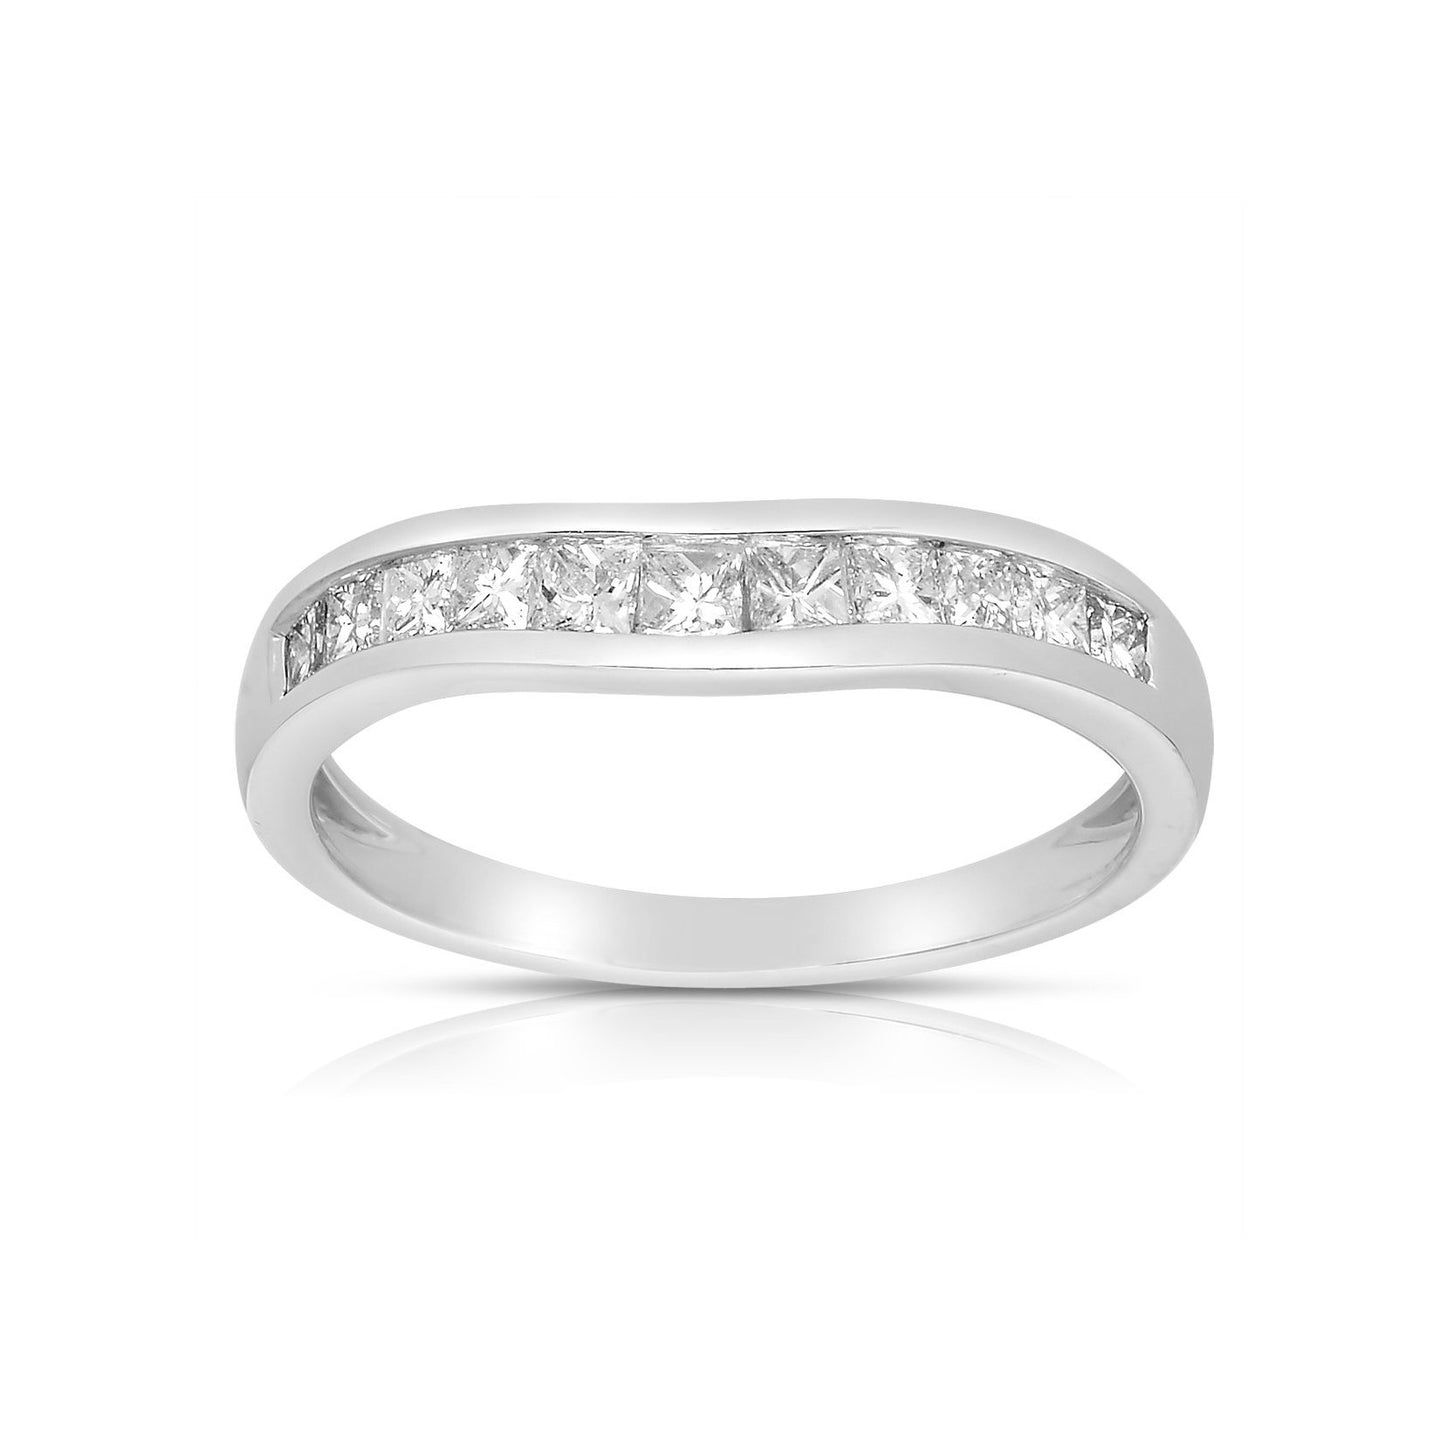 Sabel Collection 14K White Gold Princess Cut Diamond Curved Band